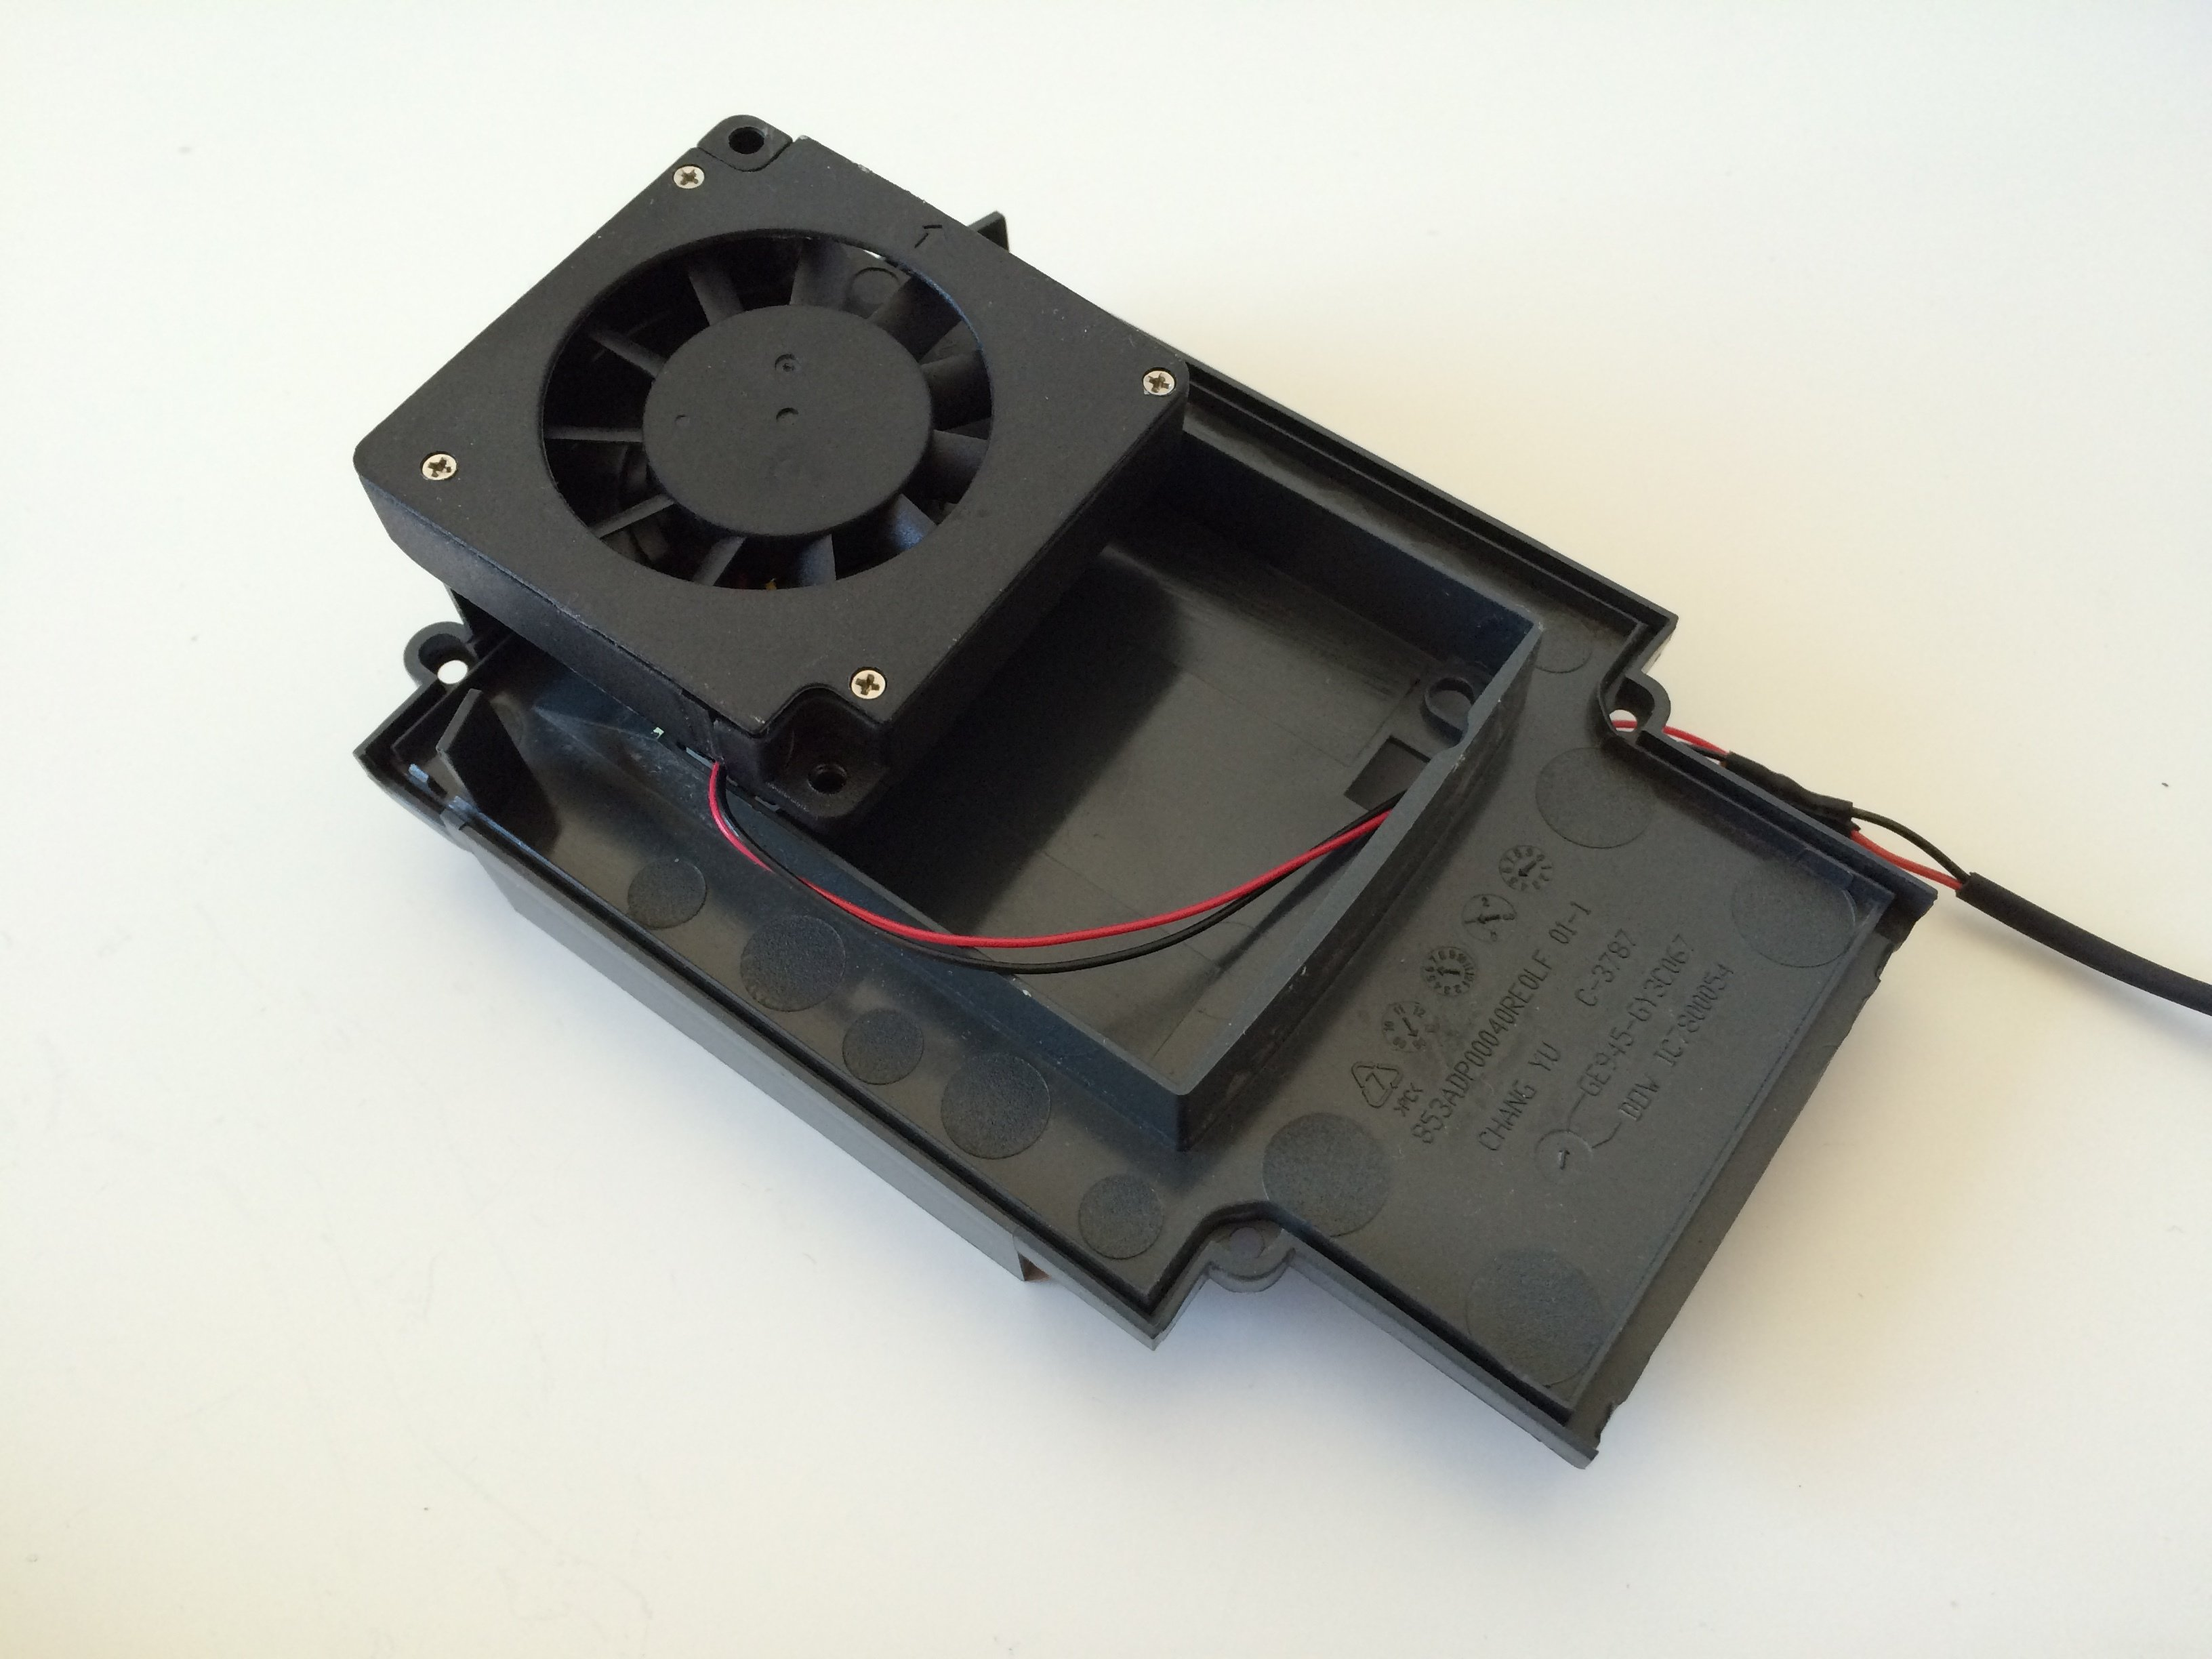 XBOX 360 Power Brick Fan Replacement - iFixit Repair Guide Xbox Slim Power Brick Fuse on